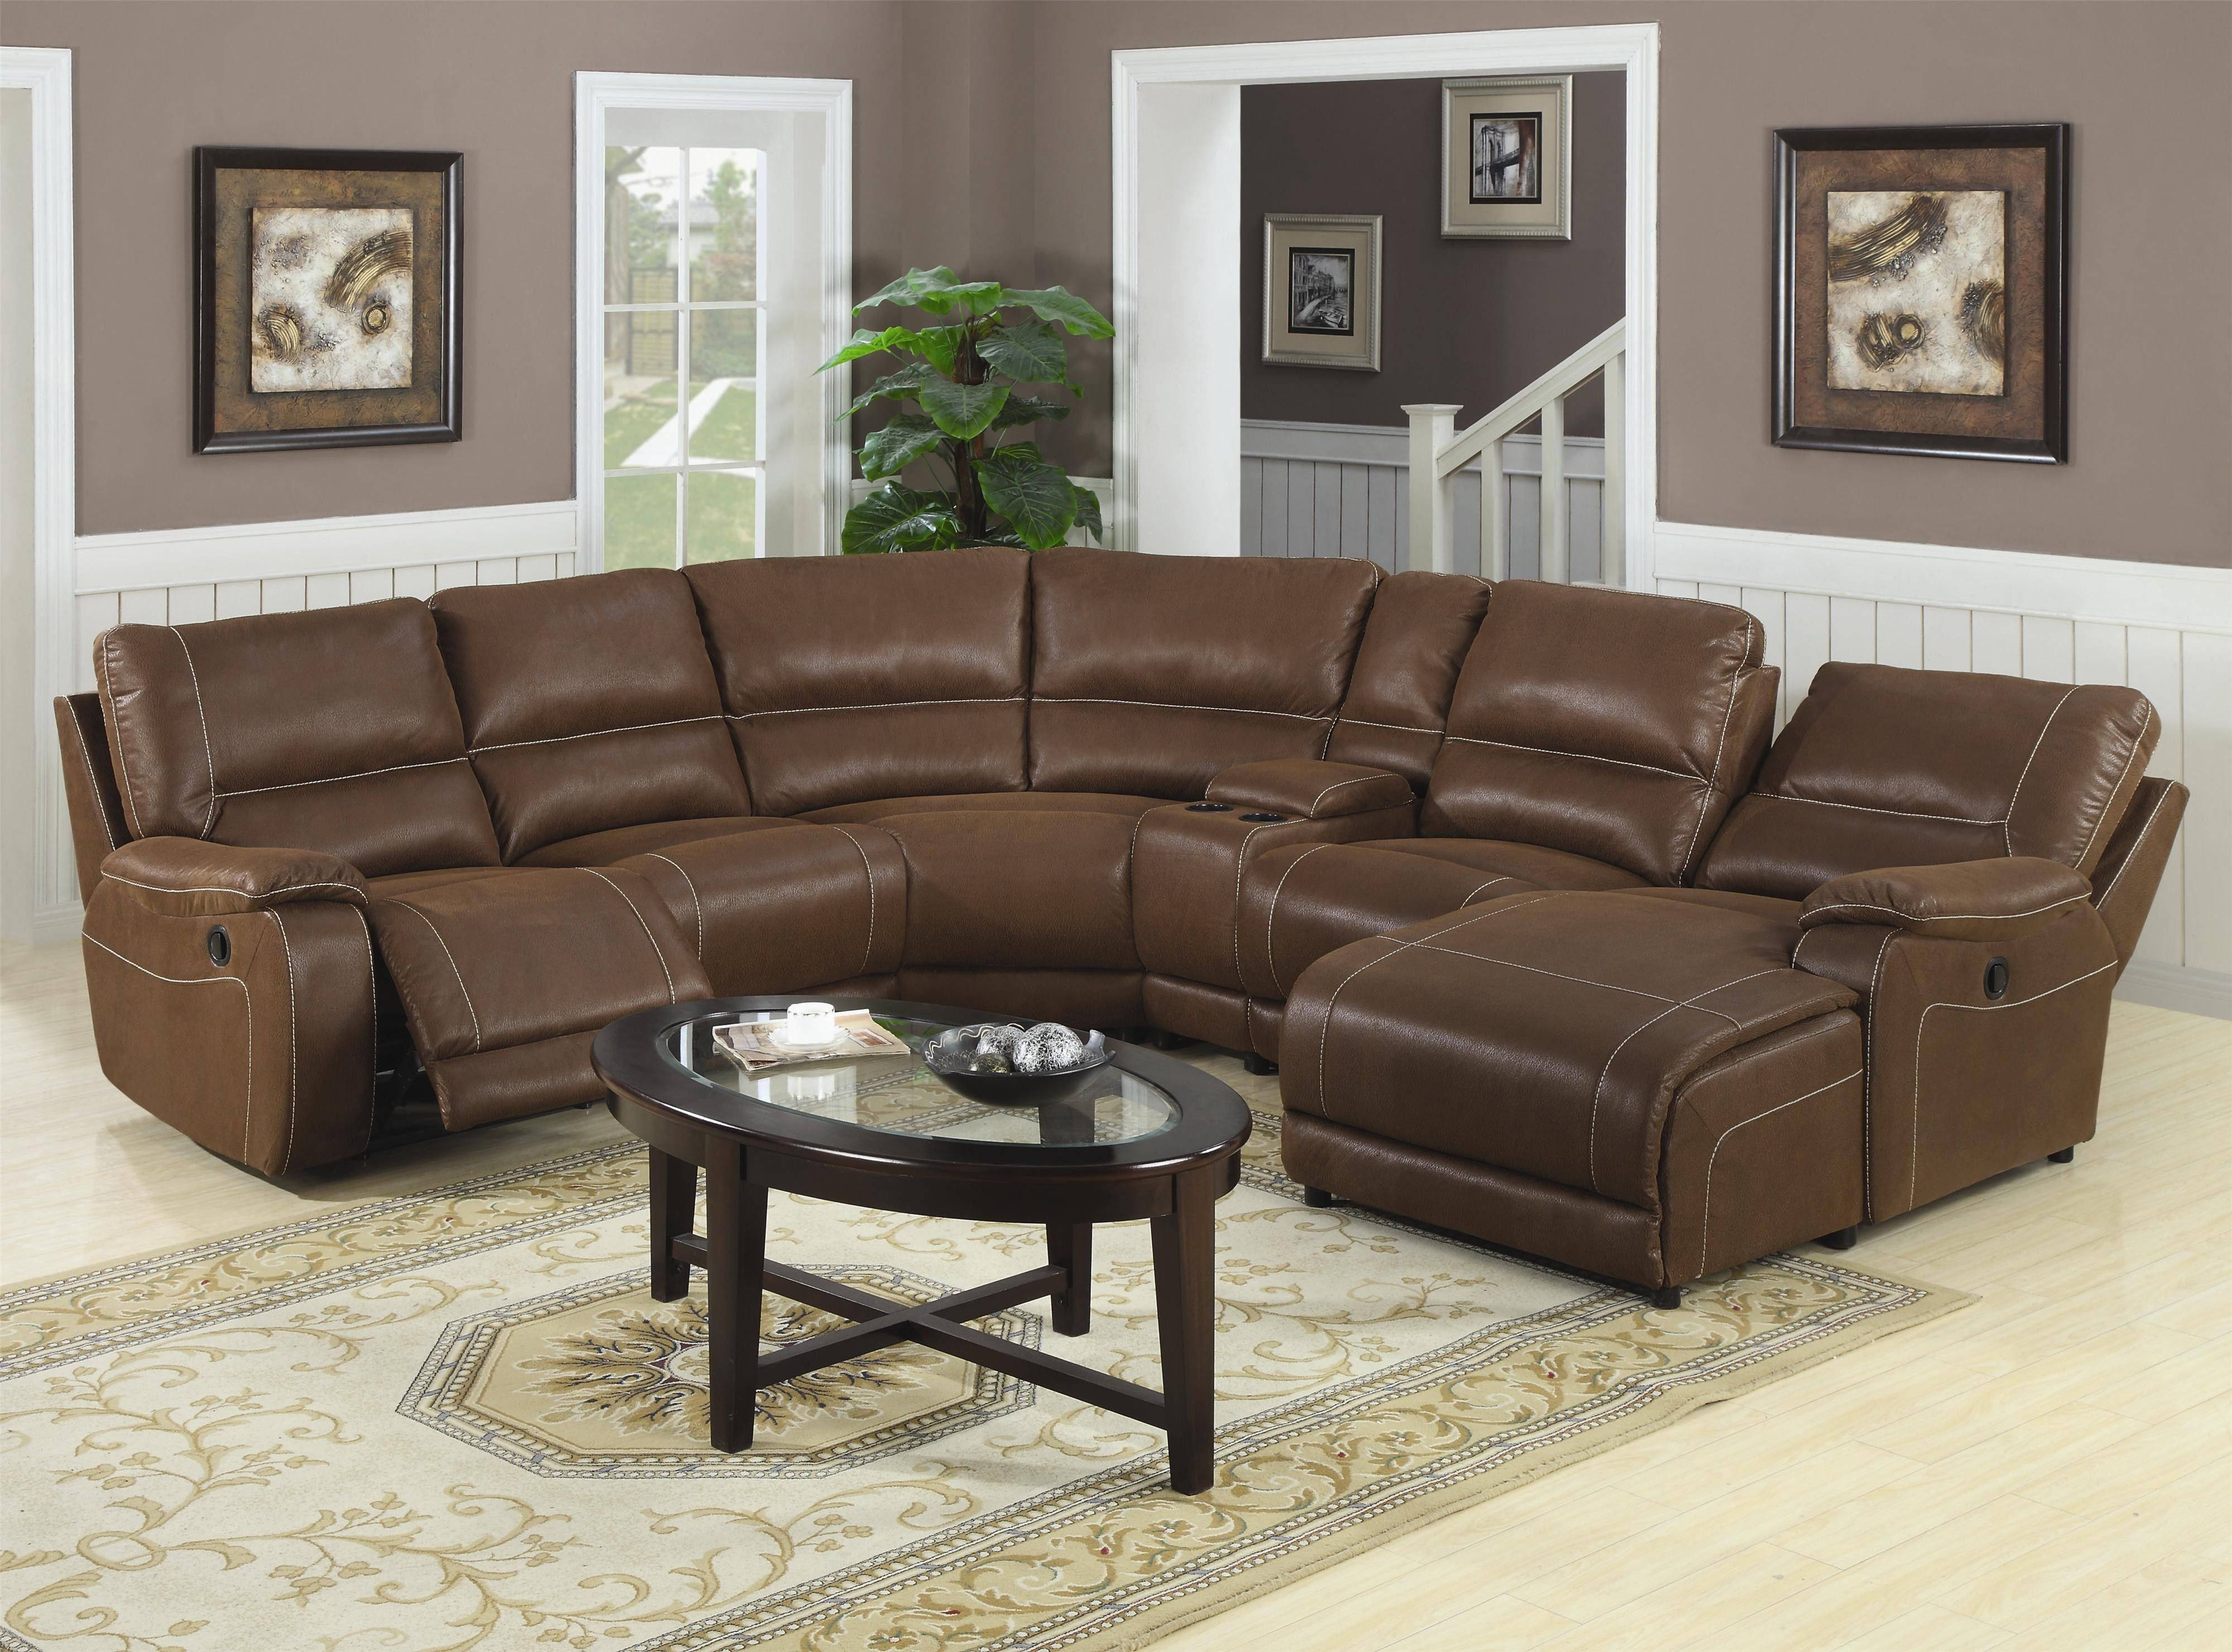 Sectional Sofa With Chaise And Recliner Home Interior Design